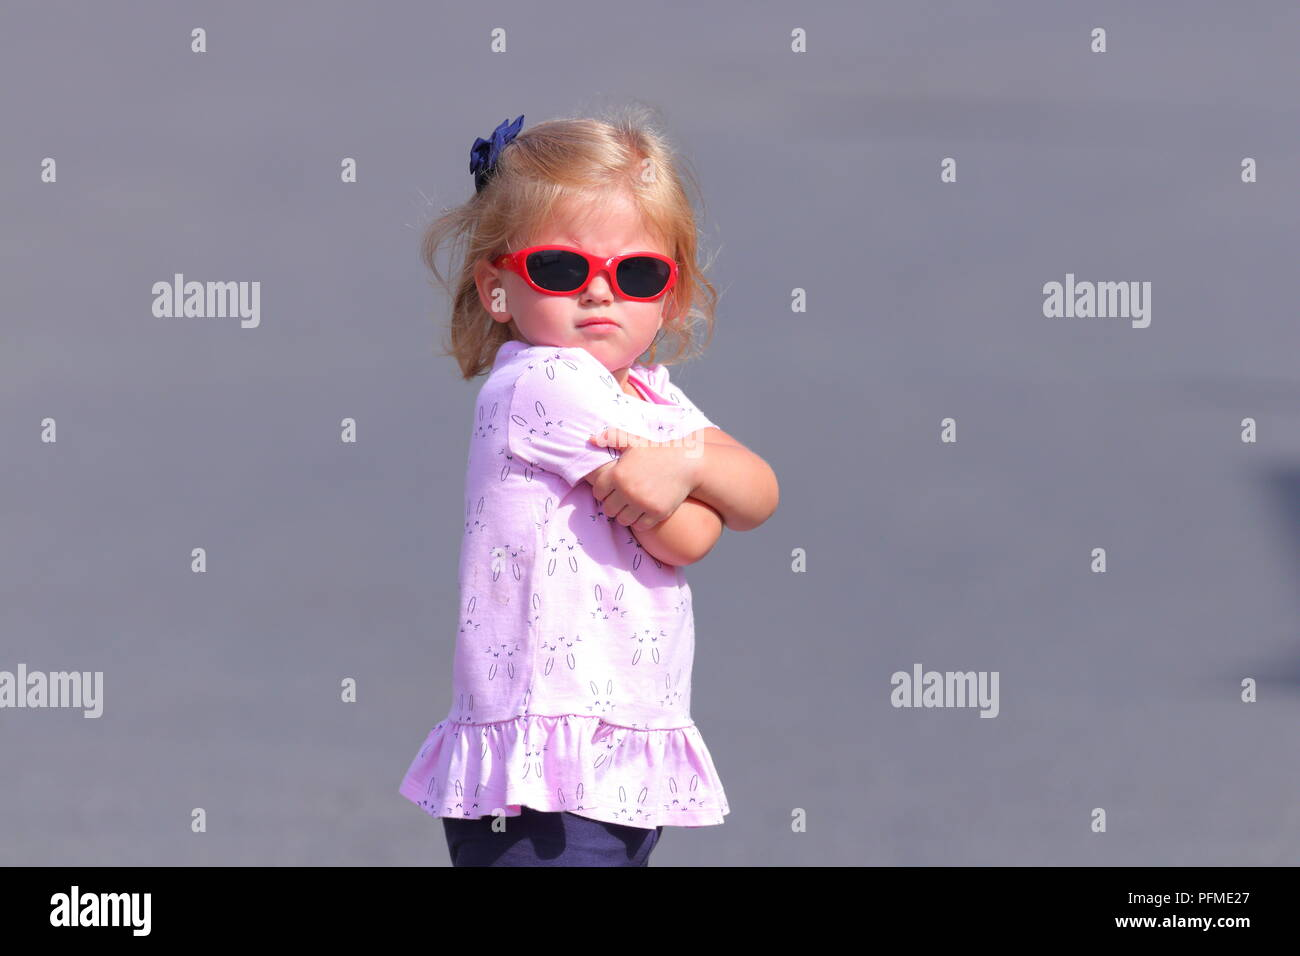 Little girl with an attitude - Stock Image